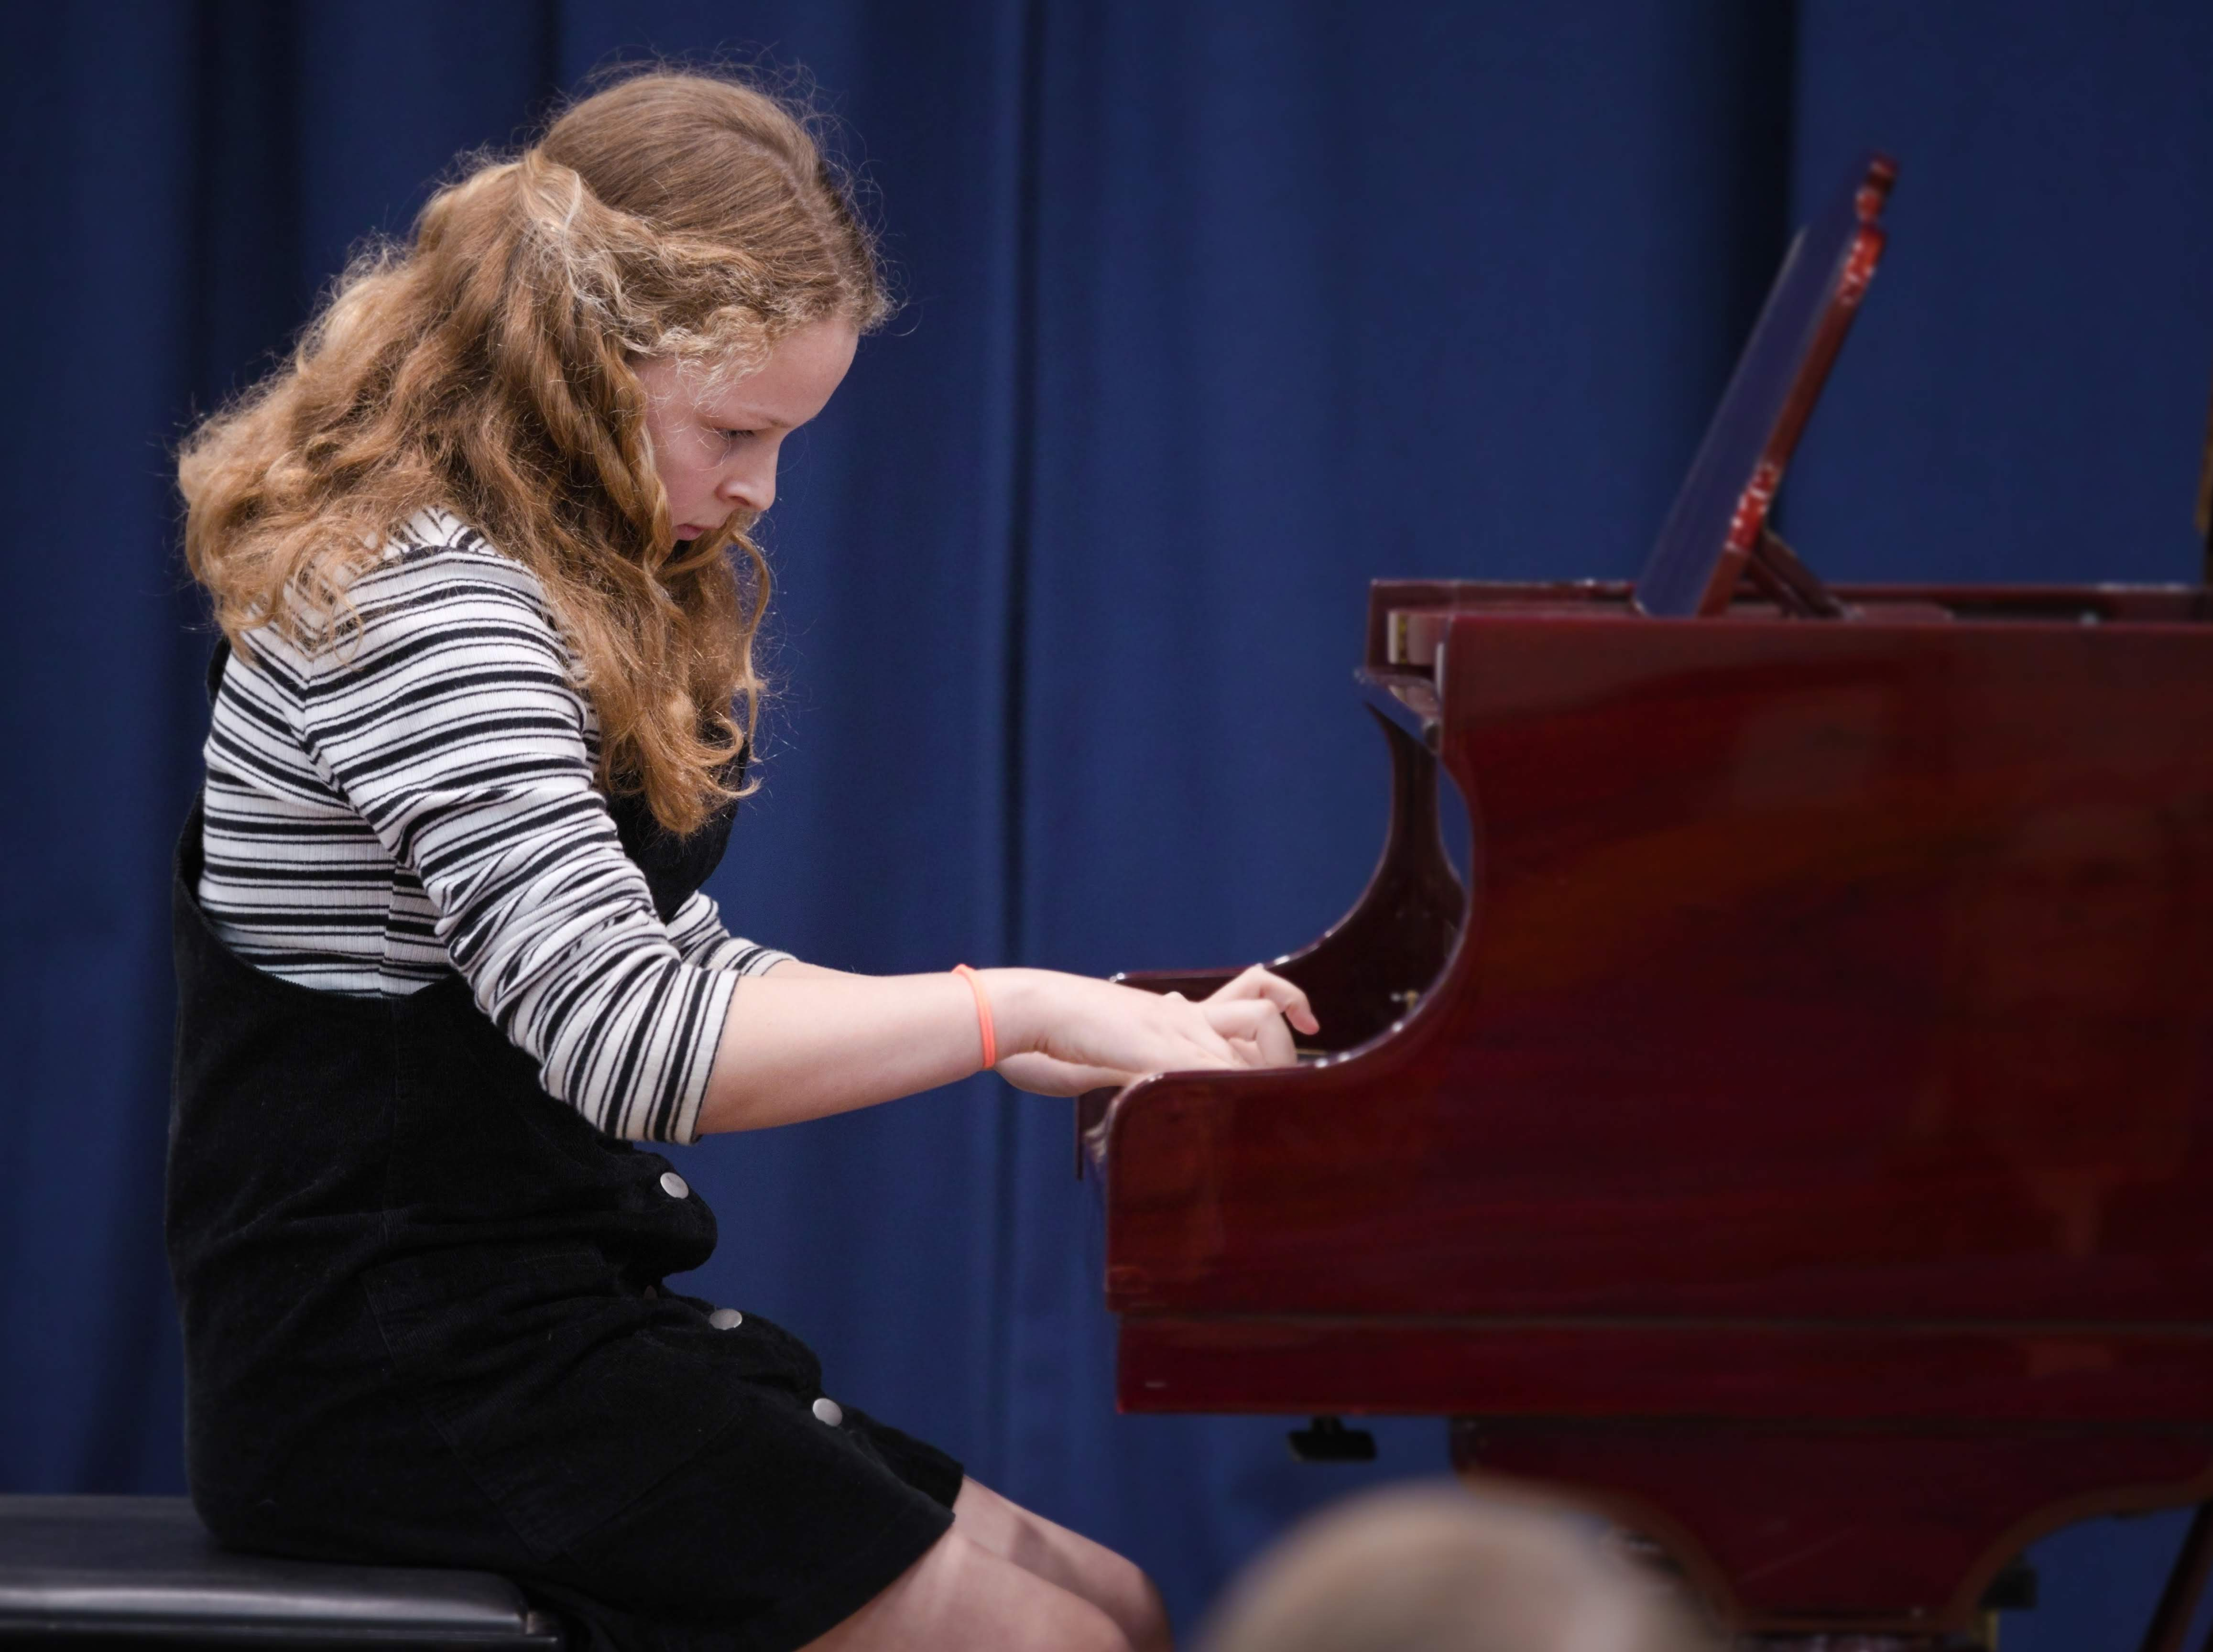 WGE Pianoforte Day 2 Katie Geary Displays her Skills on the Piano